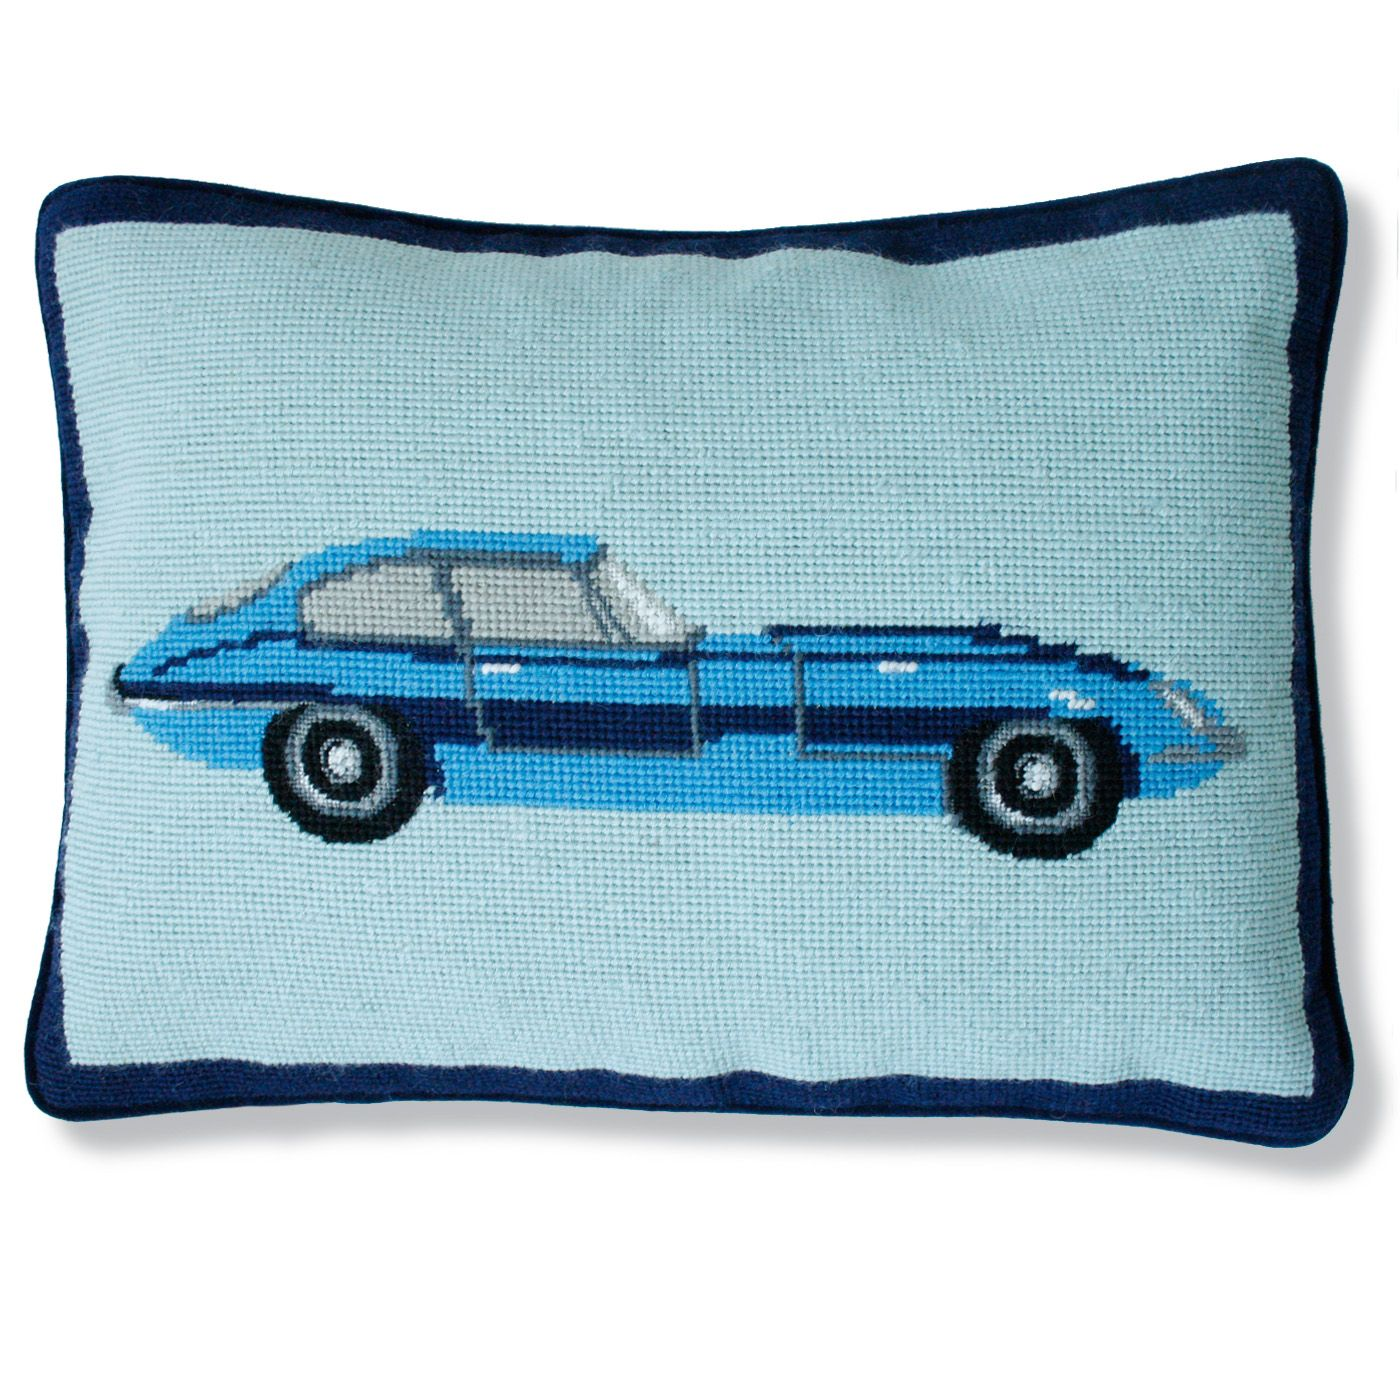 pillows decoration springs decor pillow for decorating throw palm turquoise modern best tips home ideas decorative